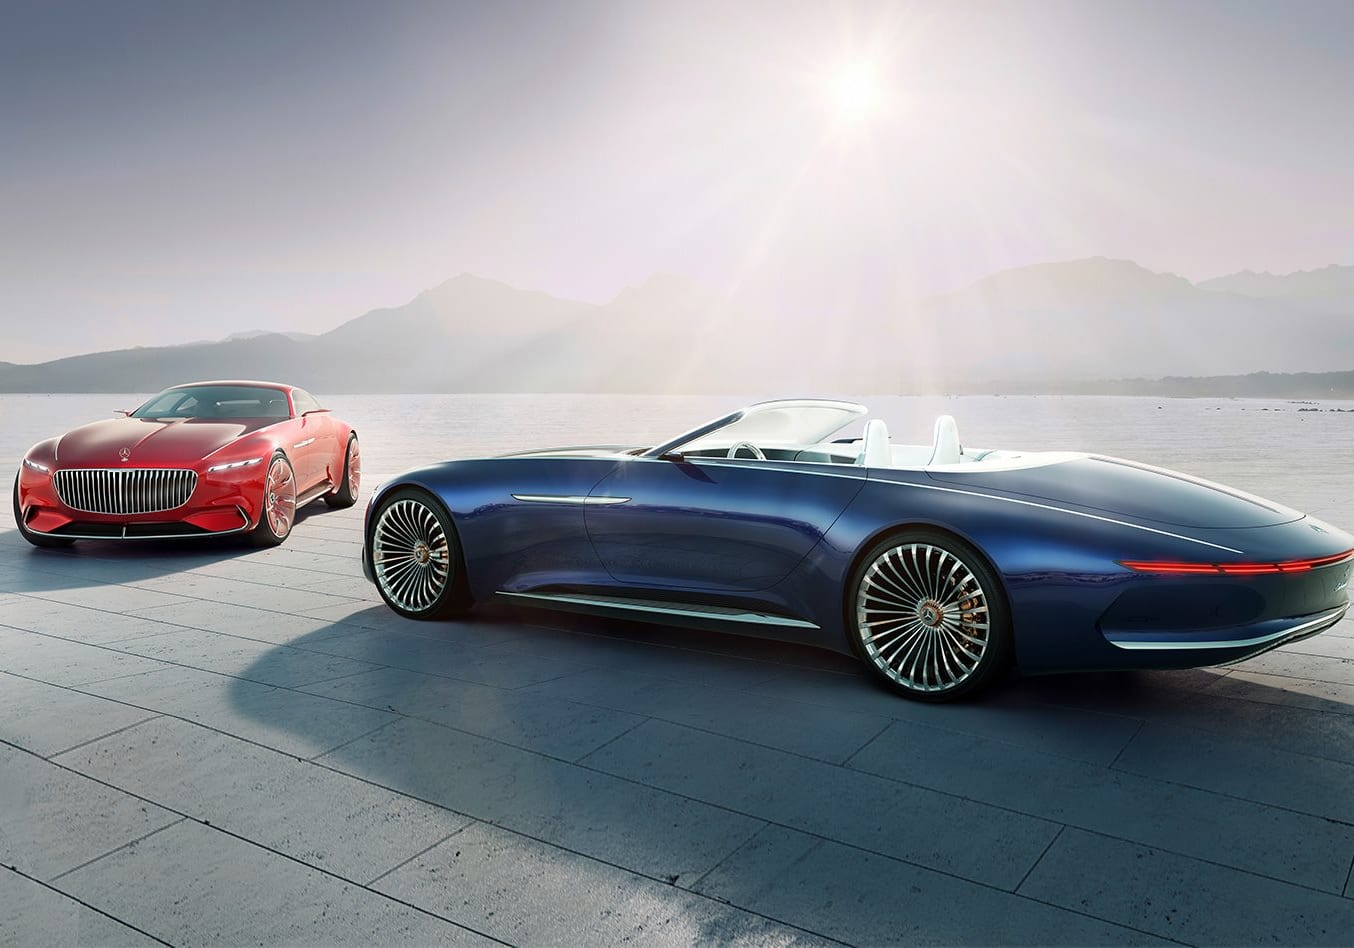 Mercedes-Maybach 6 land yacht could enter production